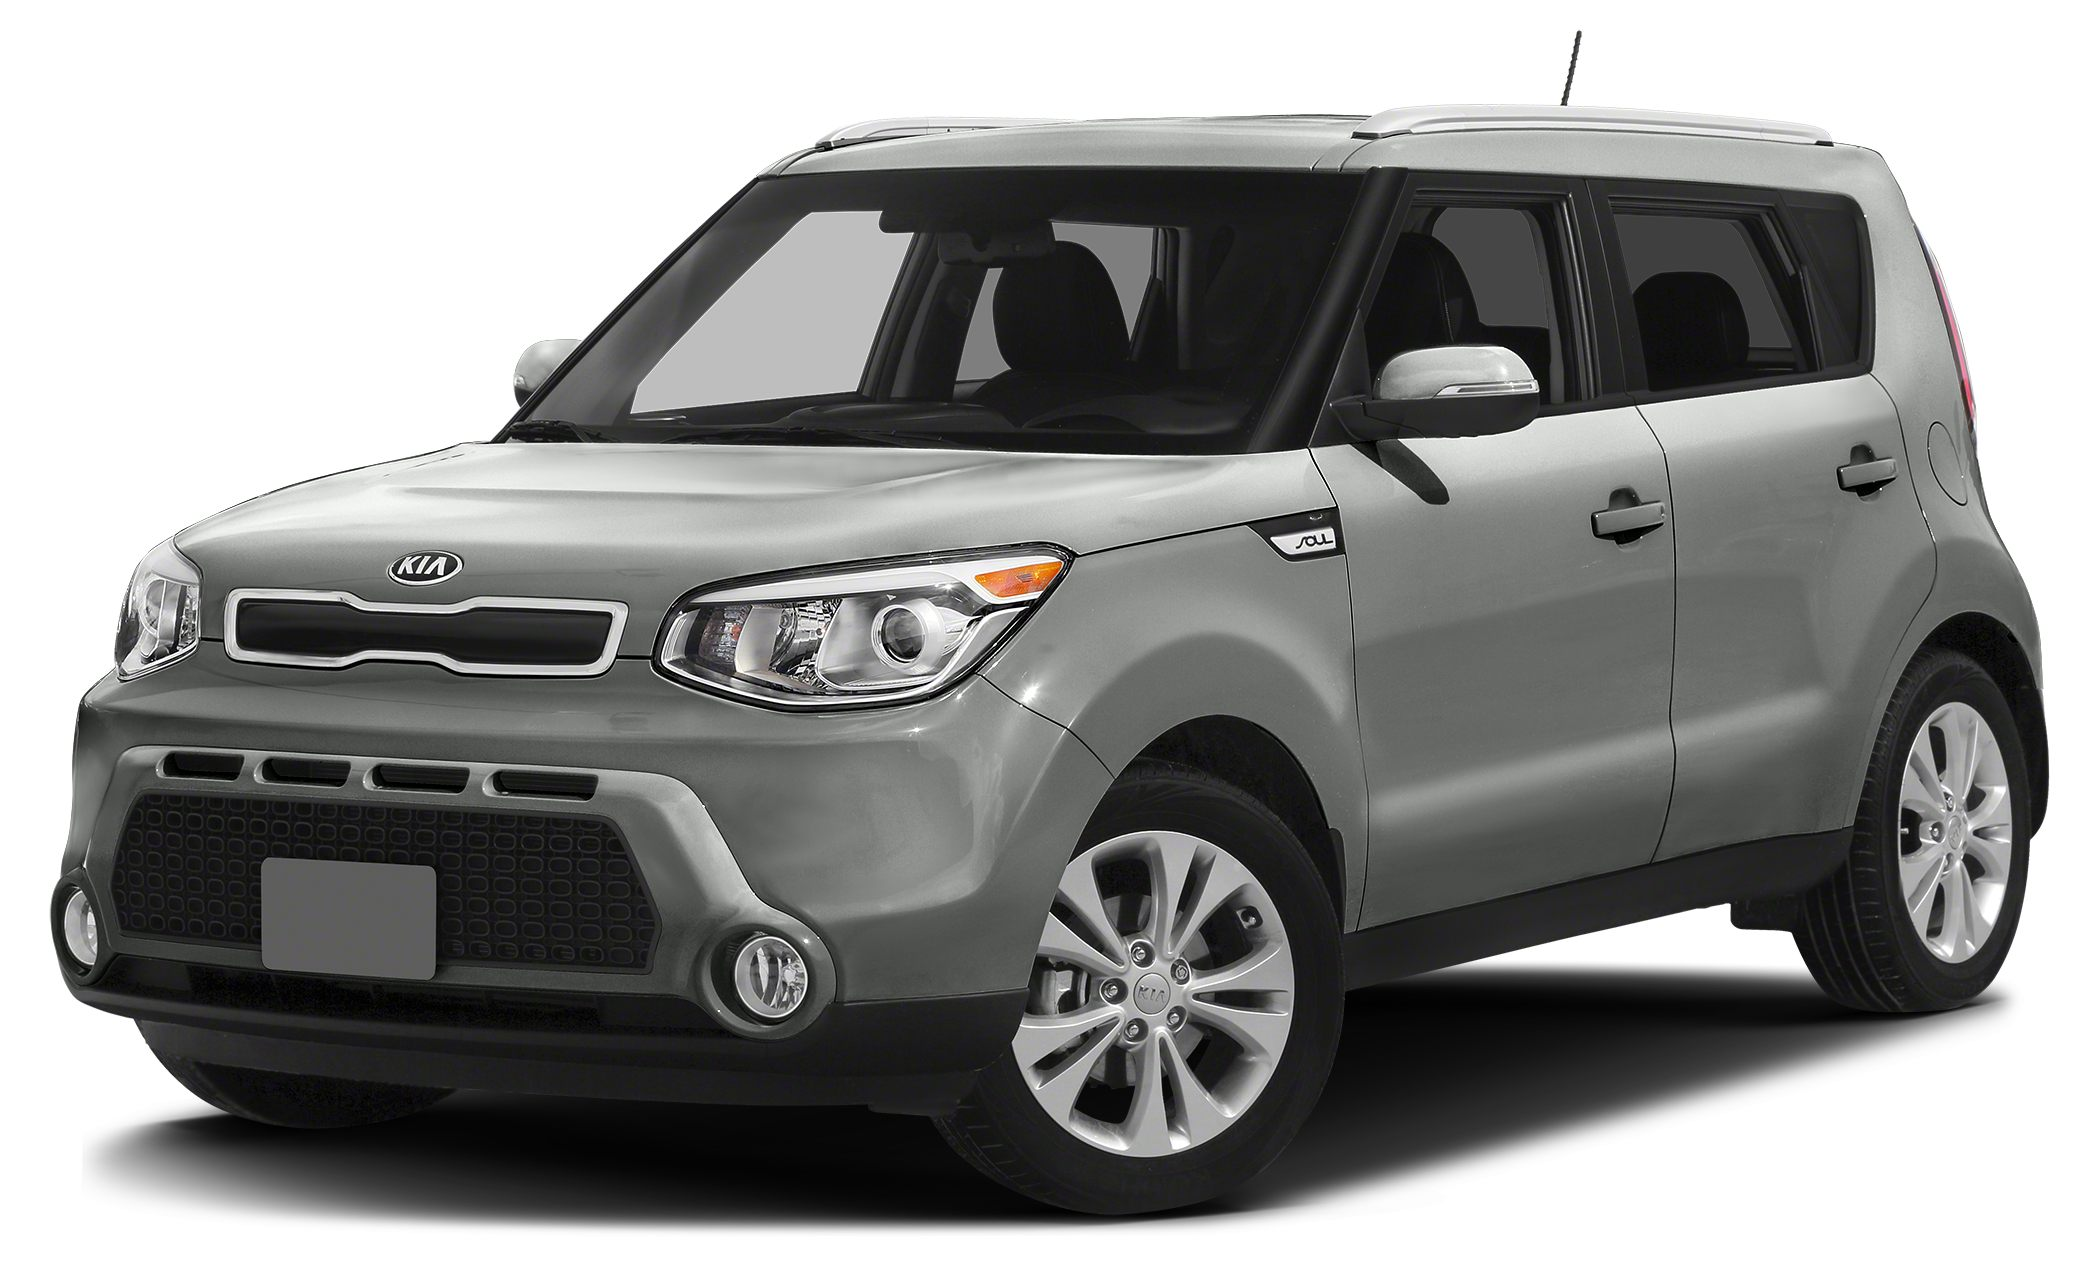 2014 Kia Soul Base 4D Hatchback 16L I4 DGI Gamma 6-Speed Automatic FWD Titanium Gray and Gra